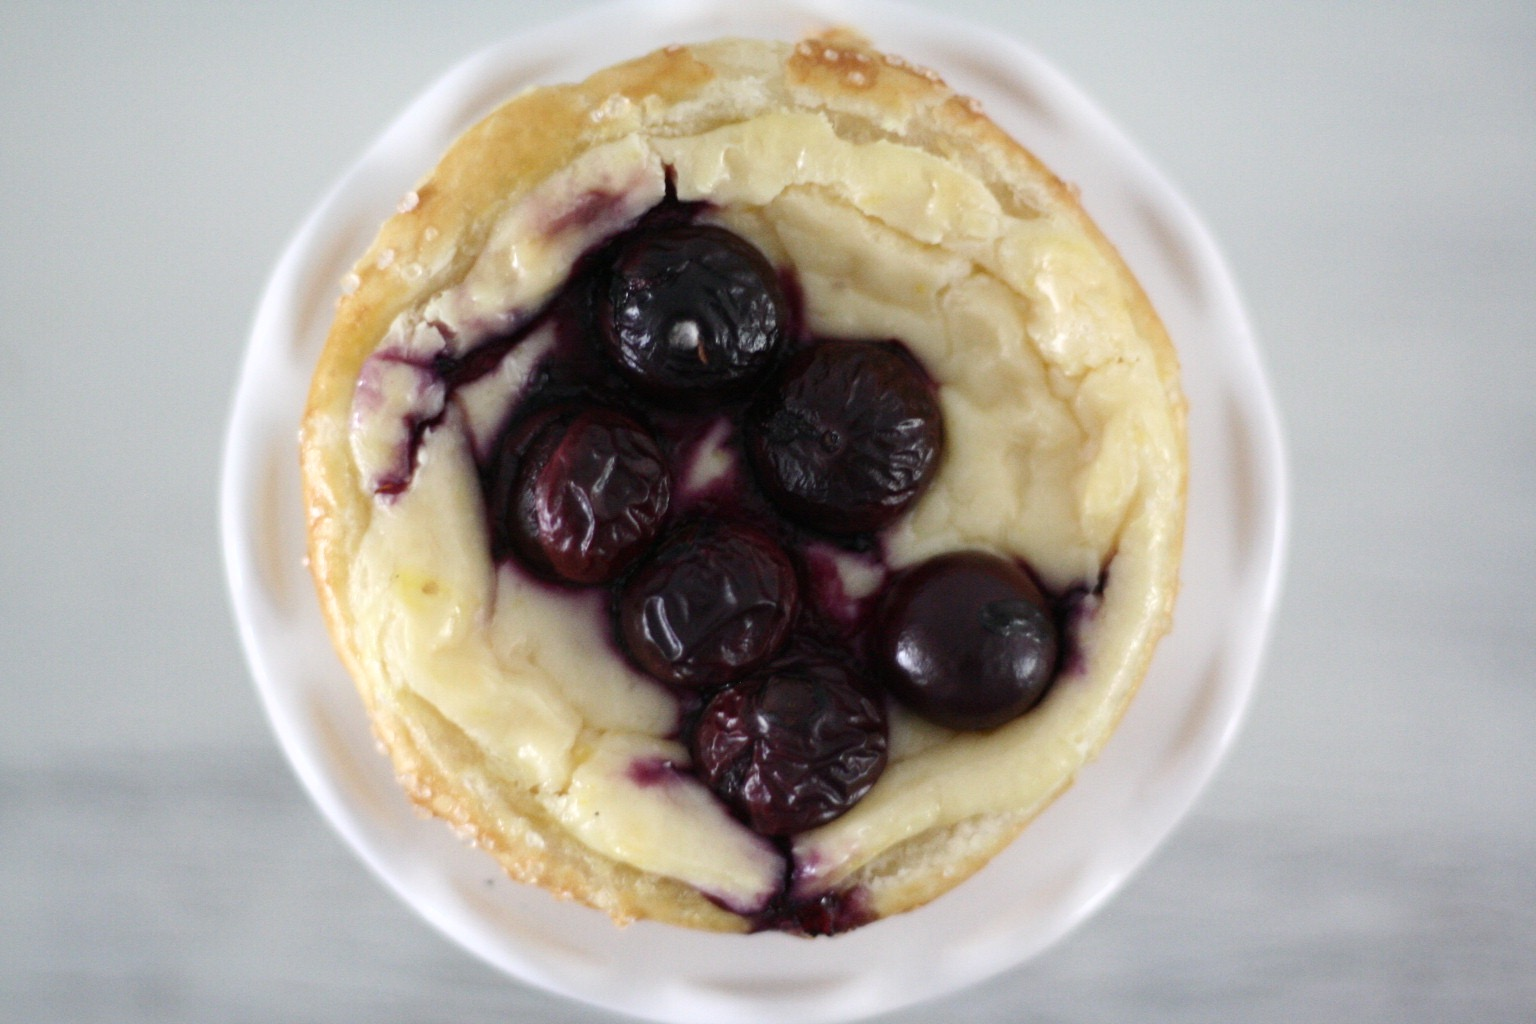 Recipe: Fruit & Cream Cheese Pastry